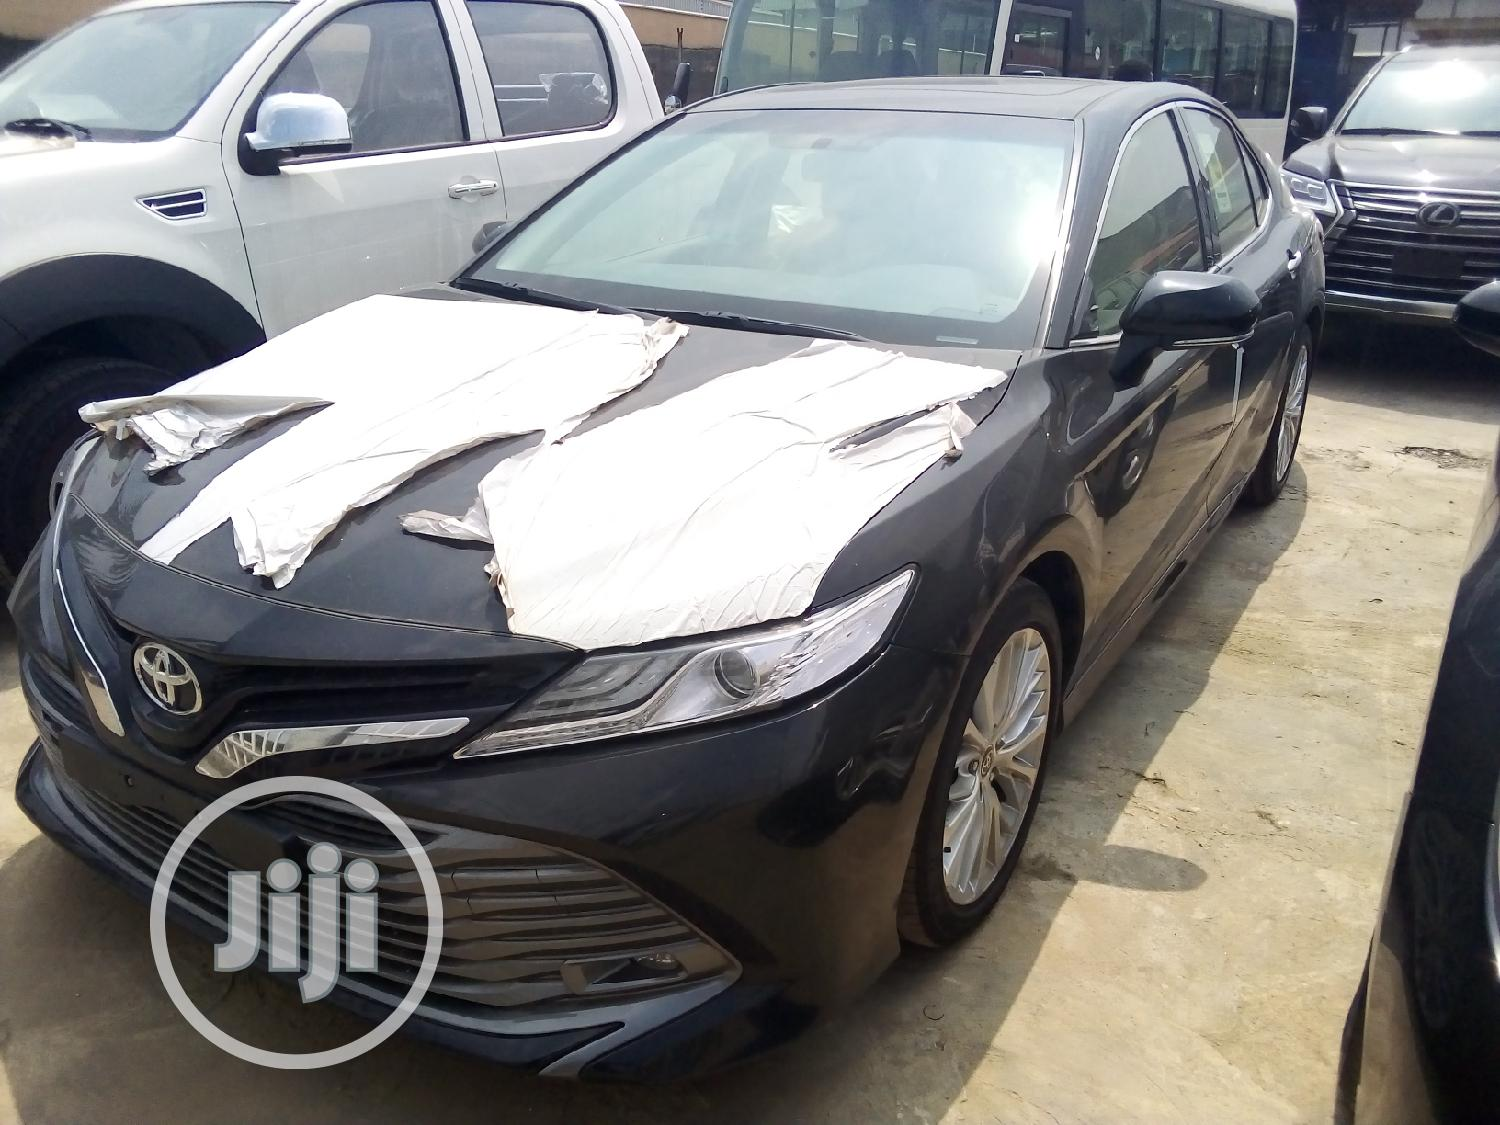 Archive: New Toyota Camry 2020 Black